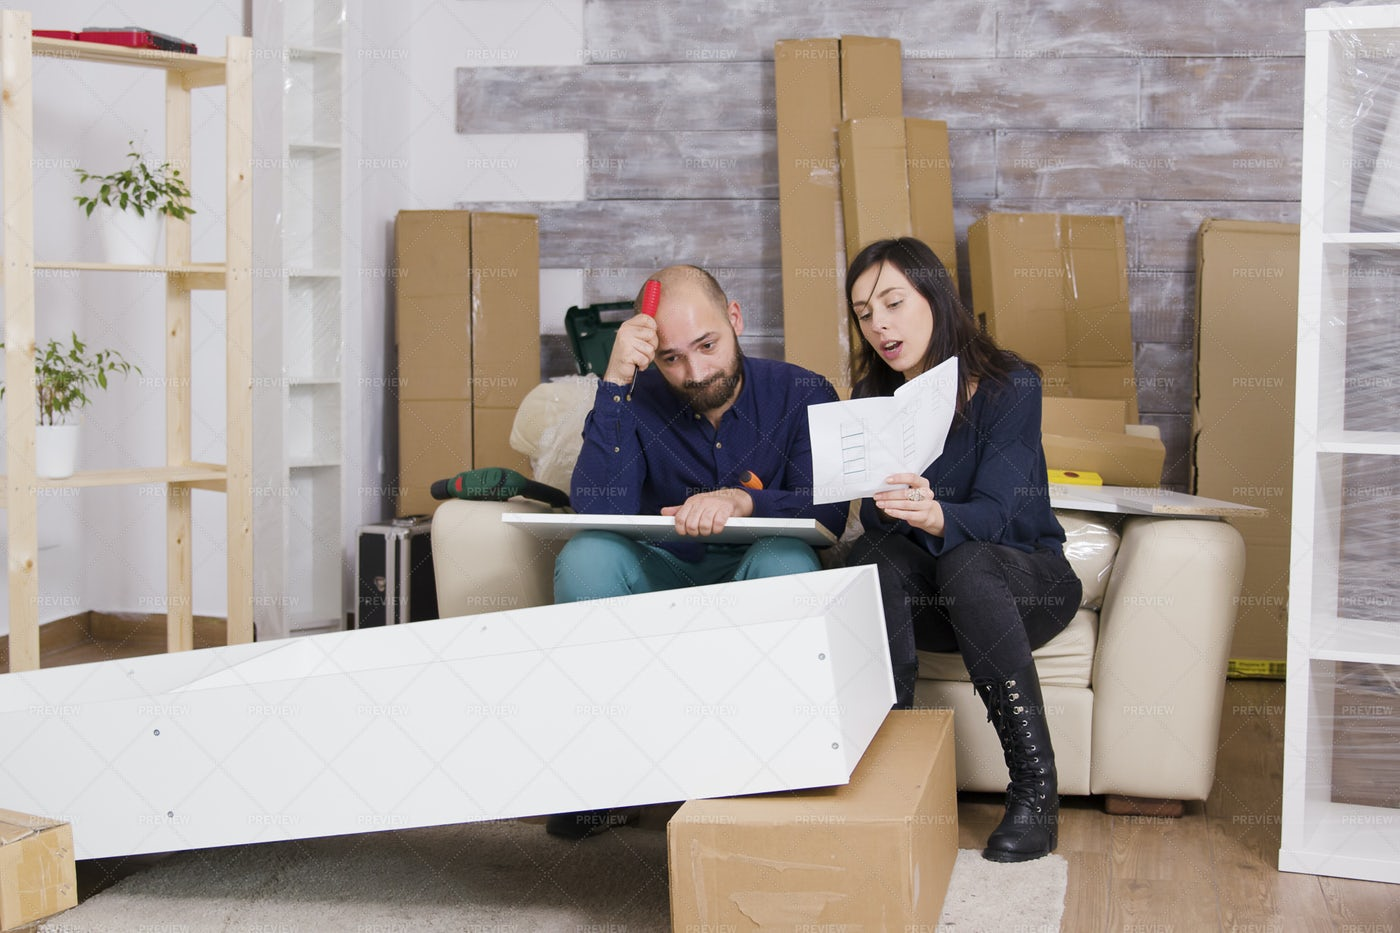 Messed Up Furniture Assembly: Stock Photos